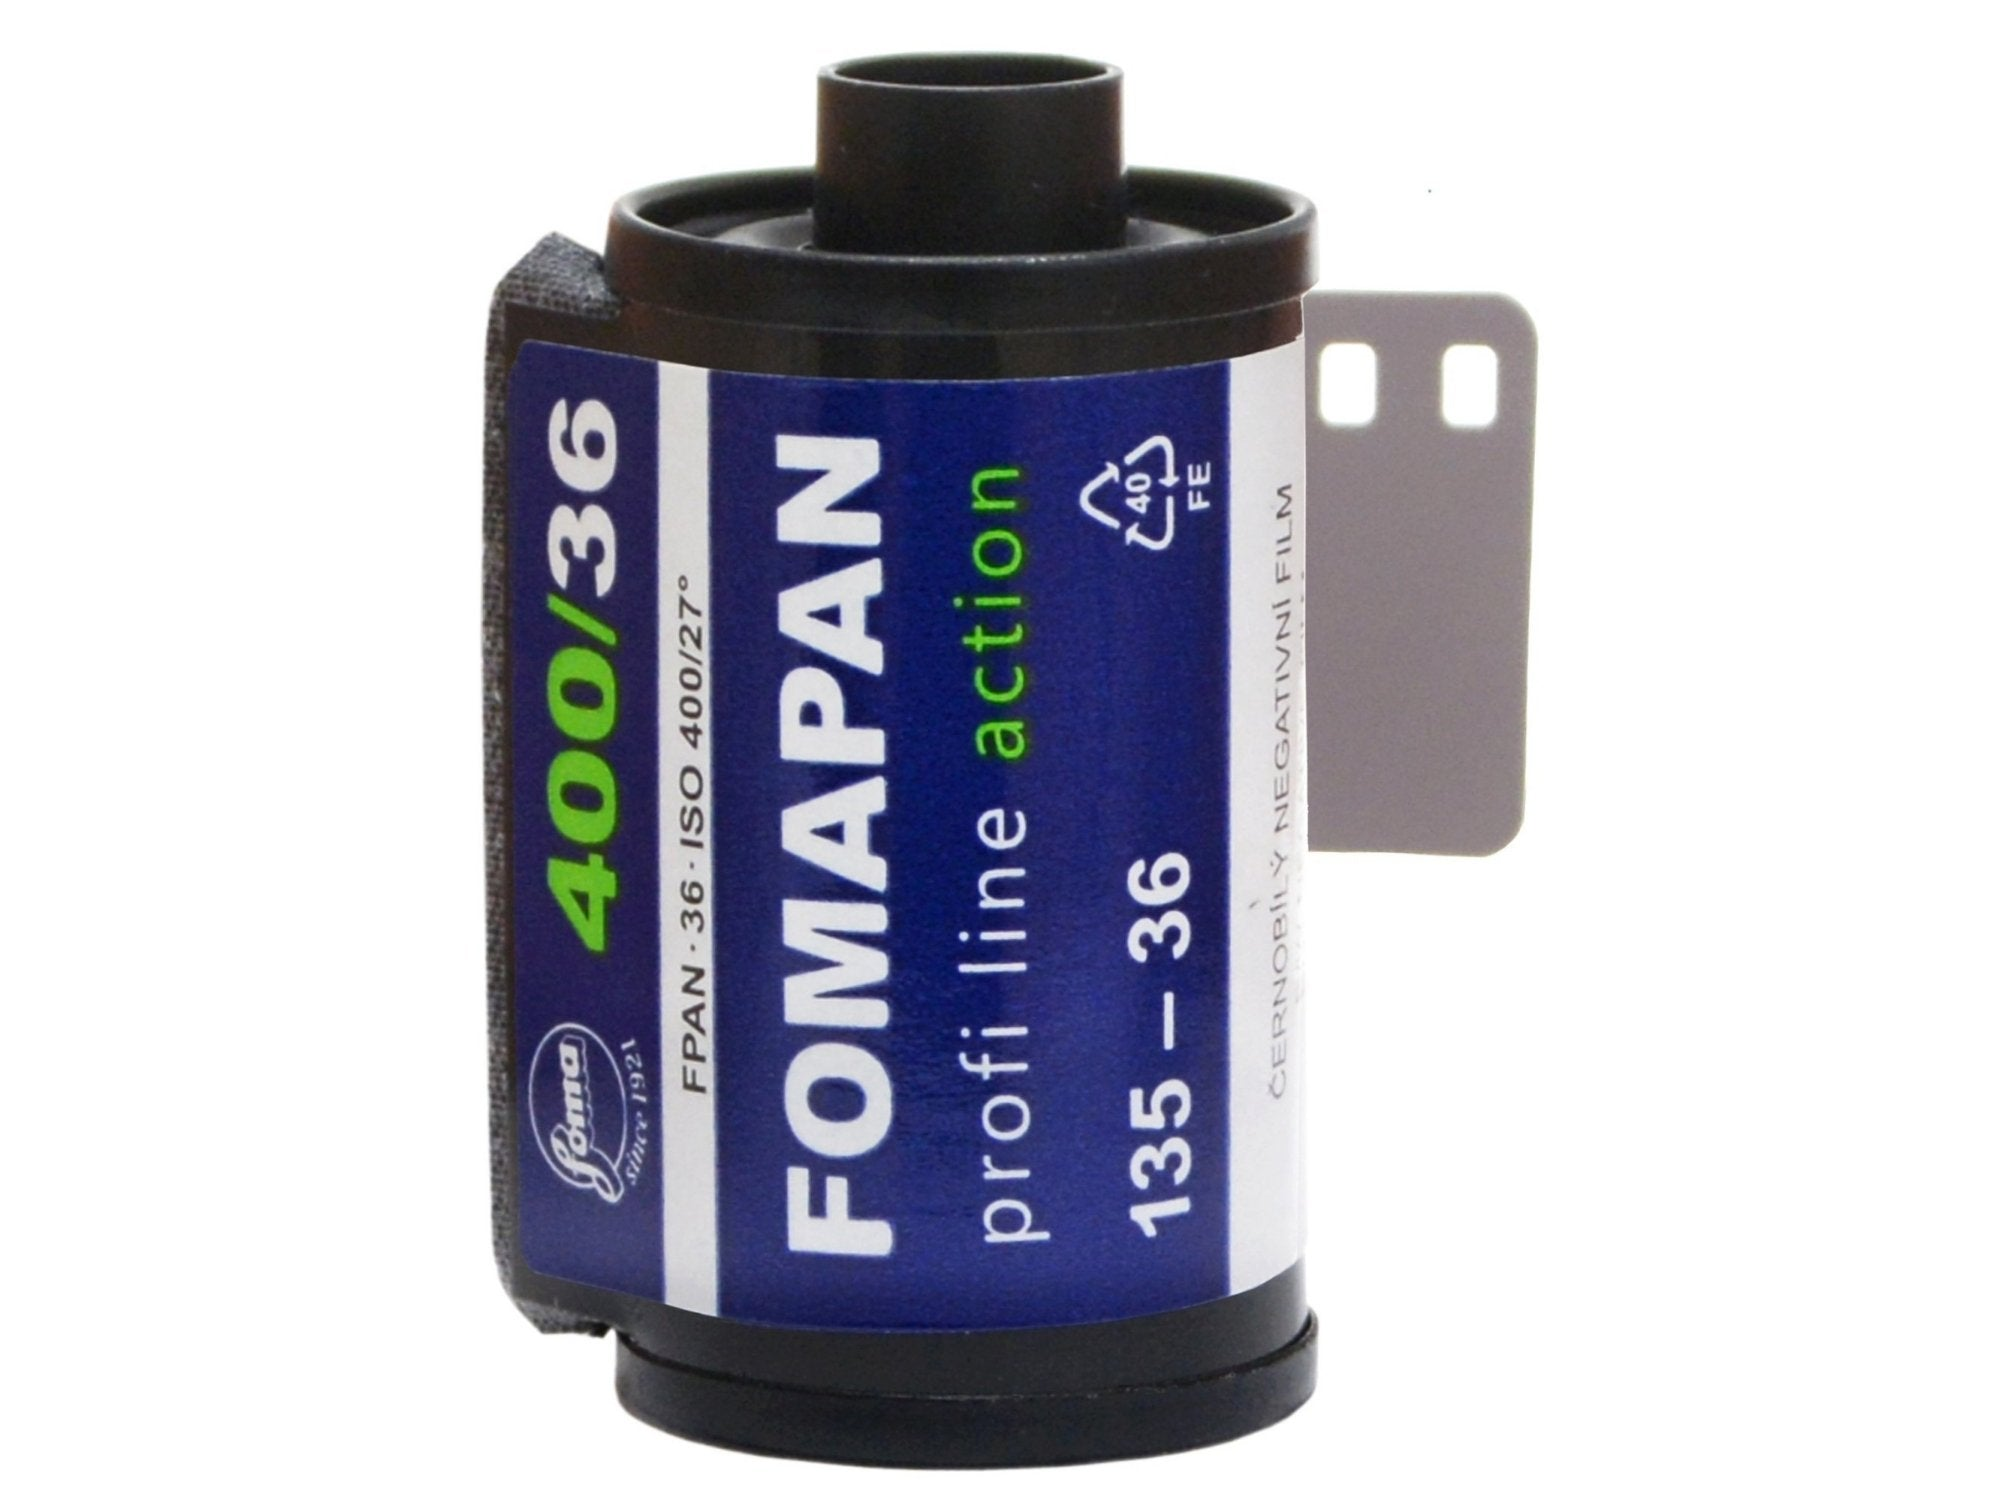 Fomapan Action 400 - 35mm Film - Analogue Wonderland